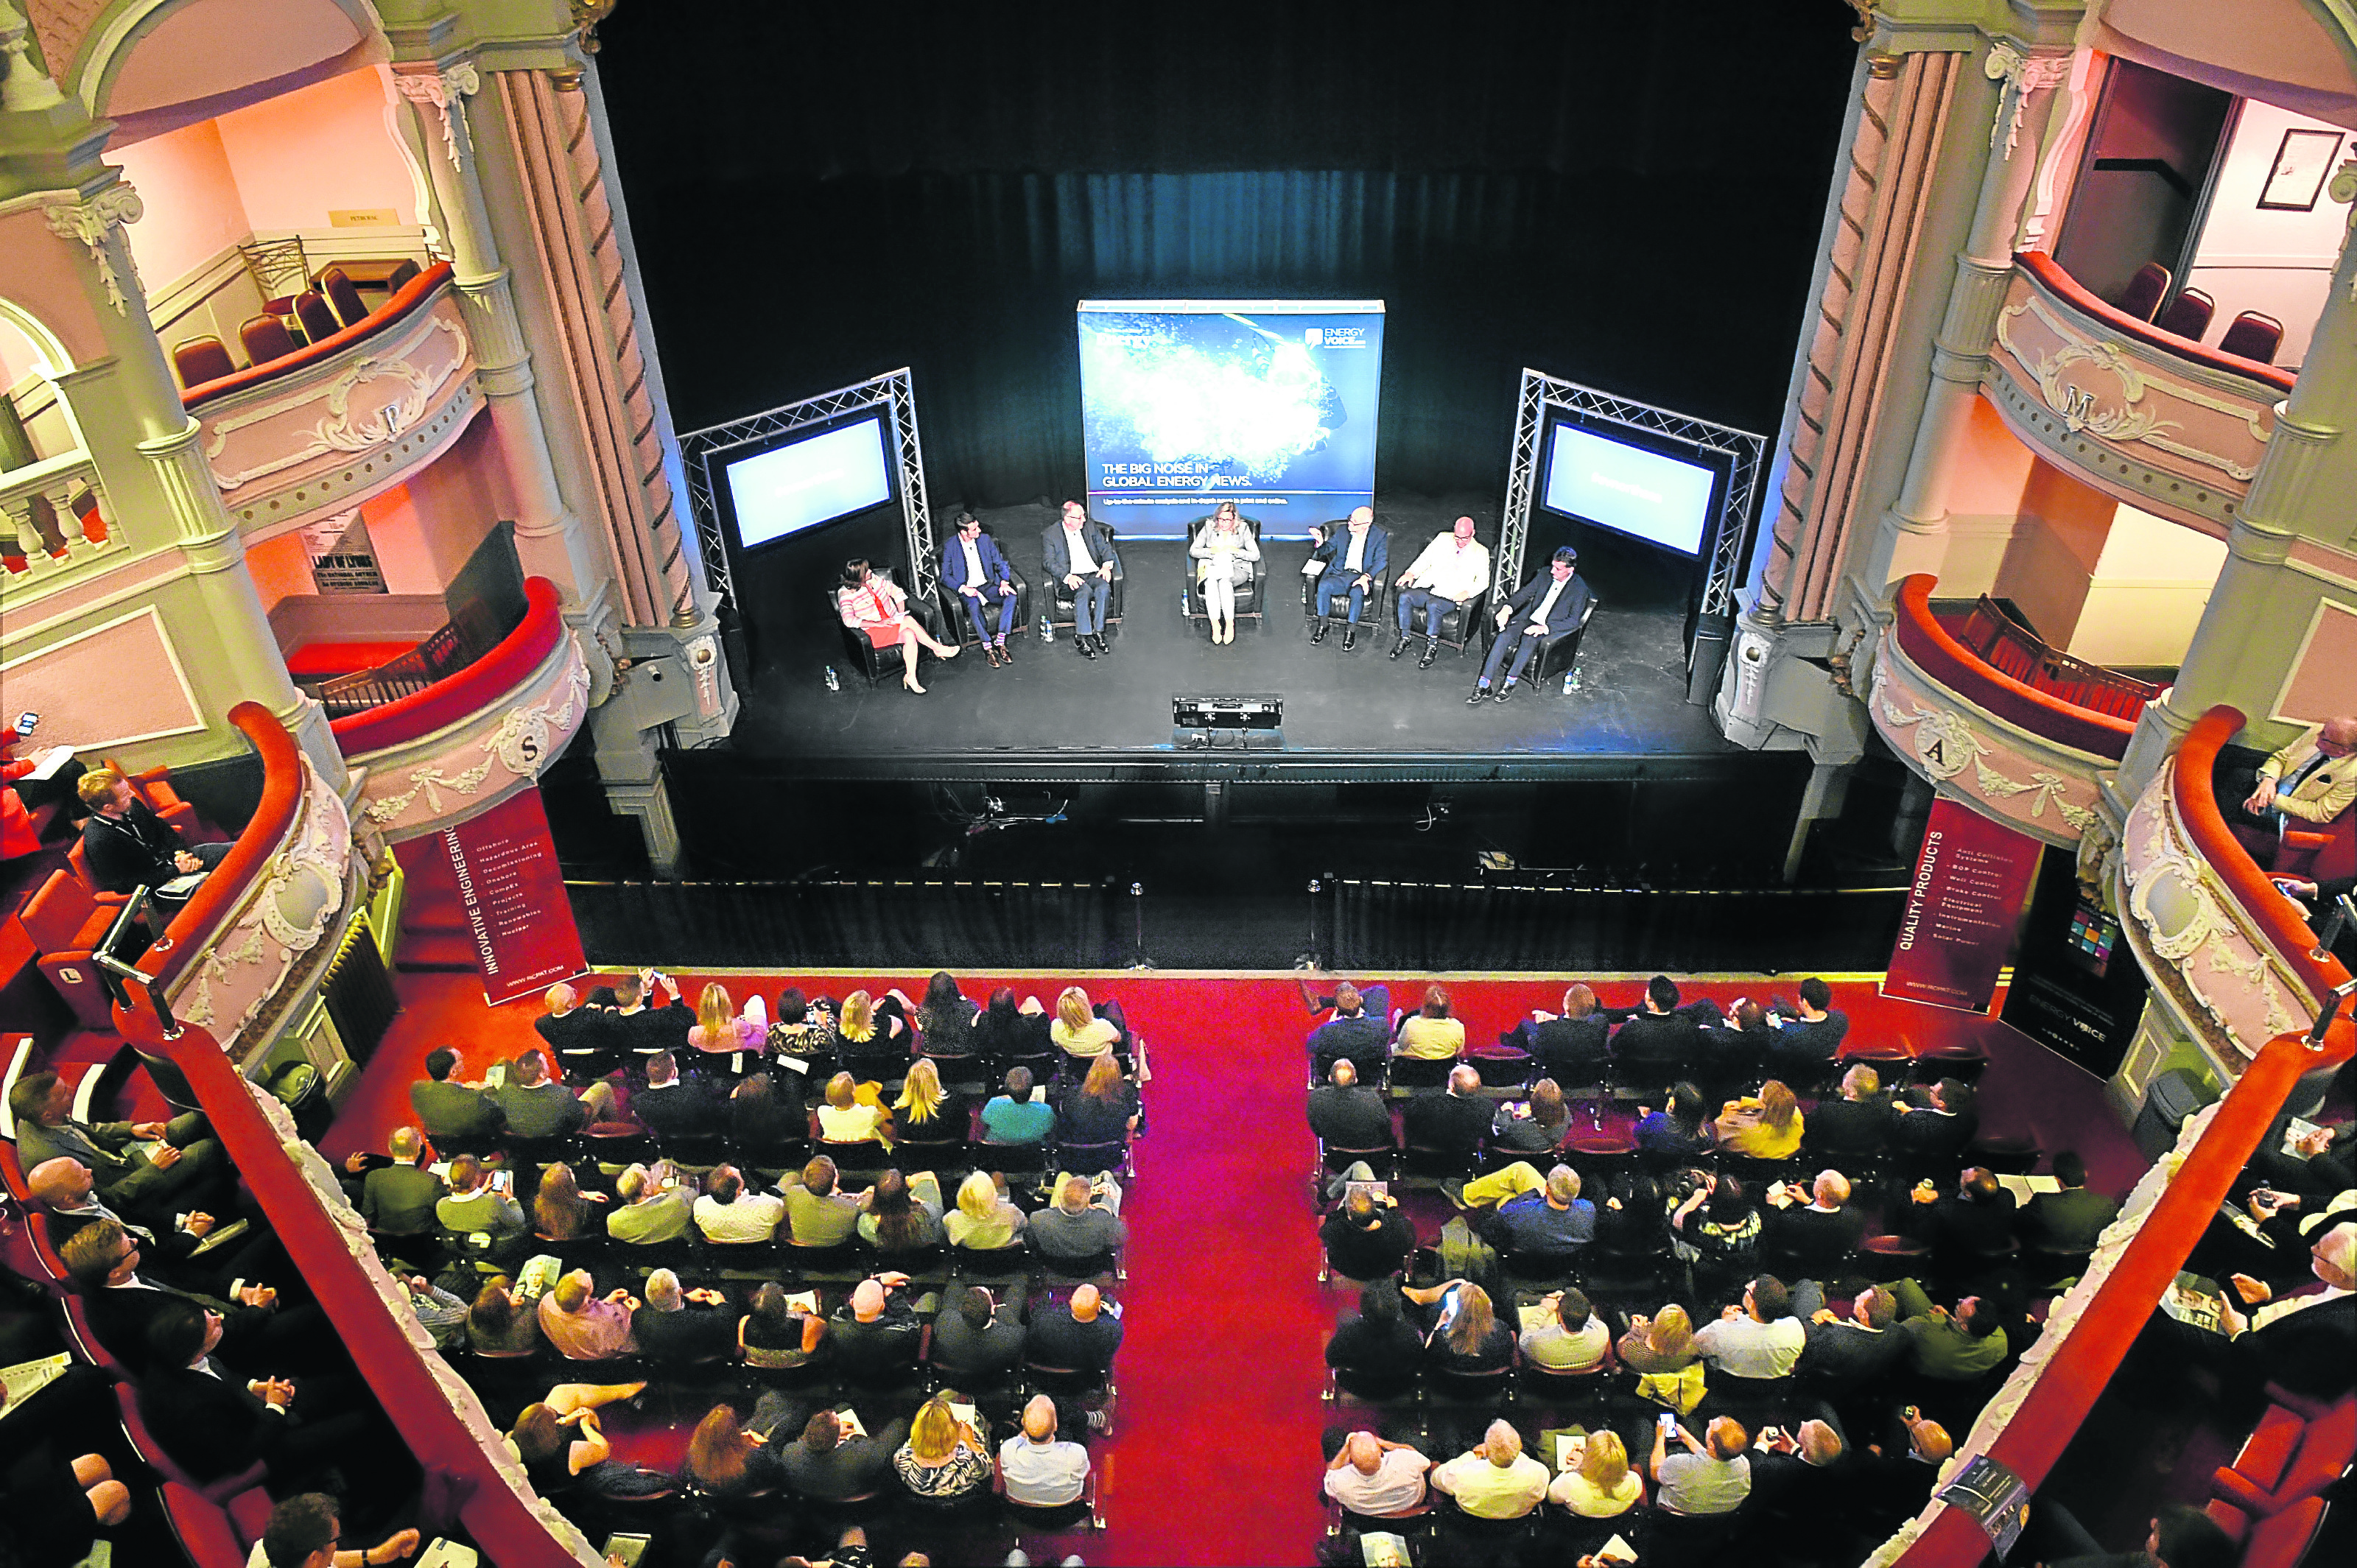 The New North Sea event held at the Tivoli Theatre in Aberdeen. The panel -  Colette Cohen, Chief executive of the Oil and Gas Technology. Nick Dunn, Services and Offshore Leader, Baker Hughes. Paul de Leeuw, Robert Gordon University's Oil and Gas Institute Dave Lynch, BP's Vice President of Reservoir Development. Rita Brown, Energy Voice Editor. Neil Sims, Expro's North Sea VP. Andy Samuel, Chief Executive of the Oil and Gas Authority (OGA) Picture by COLIN RENNIE  August 29, 2017.